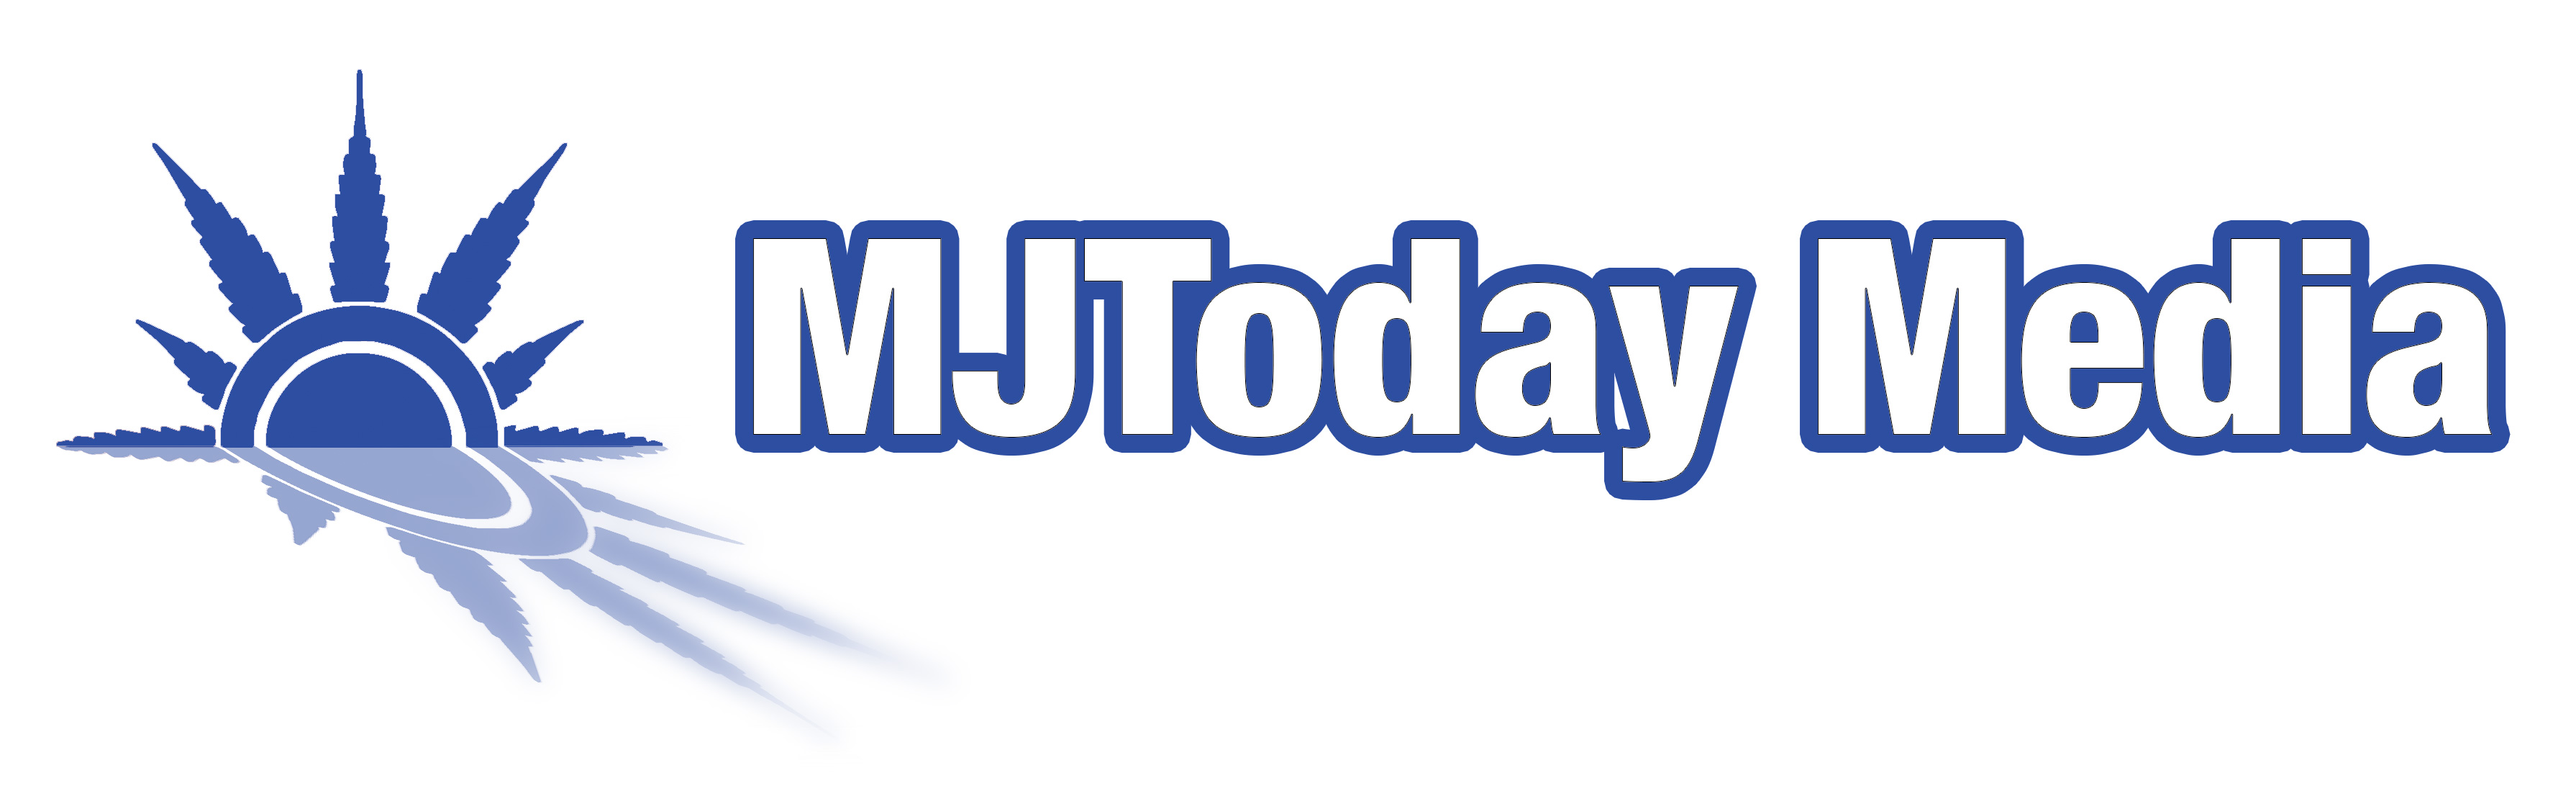 Sponsored link to MJToday Media